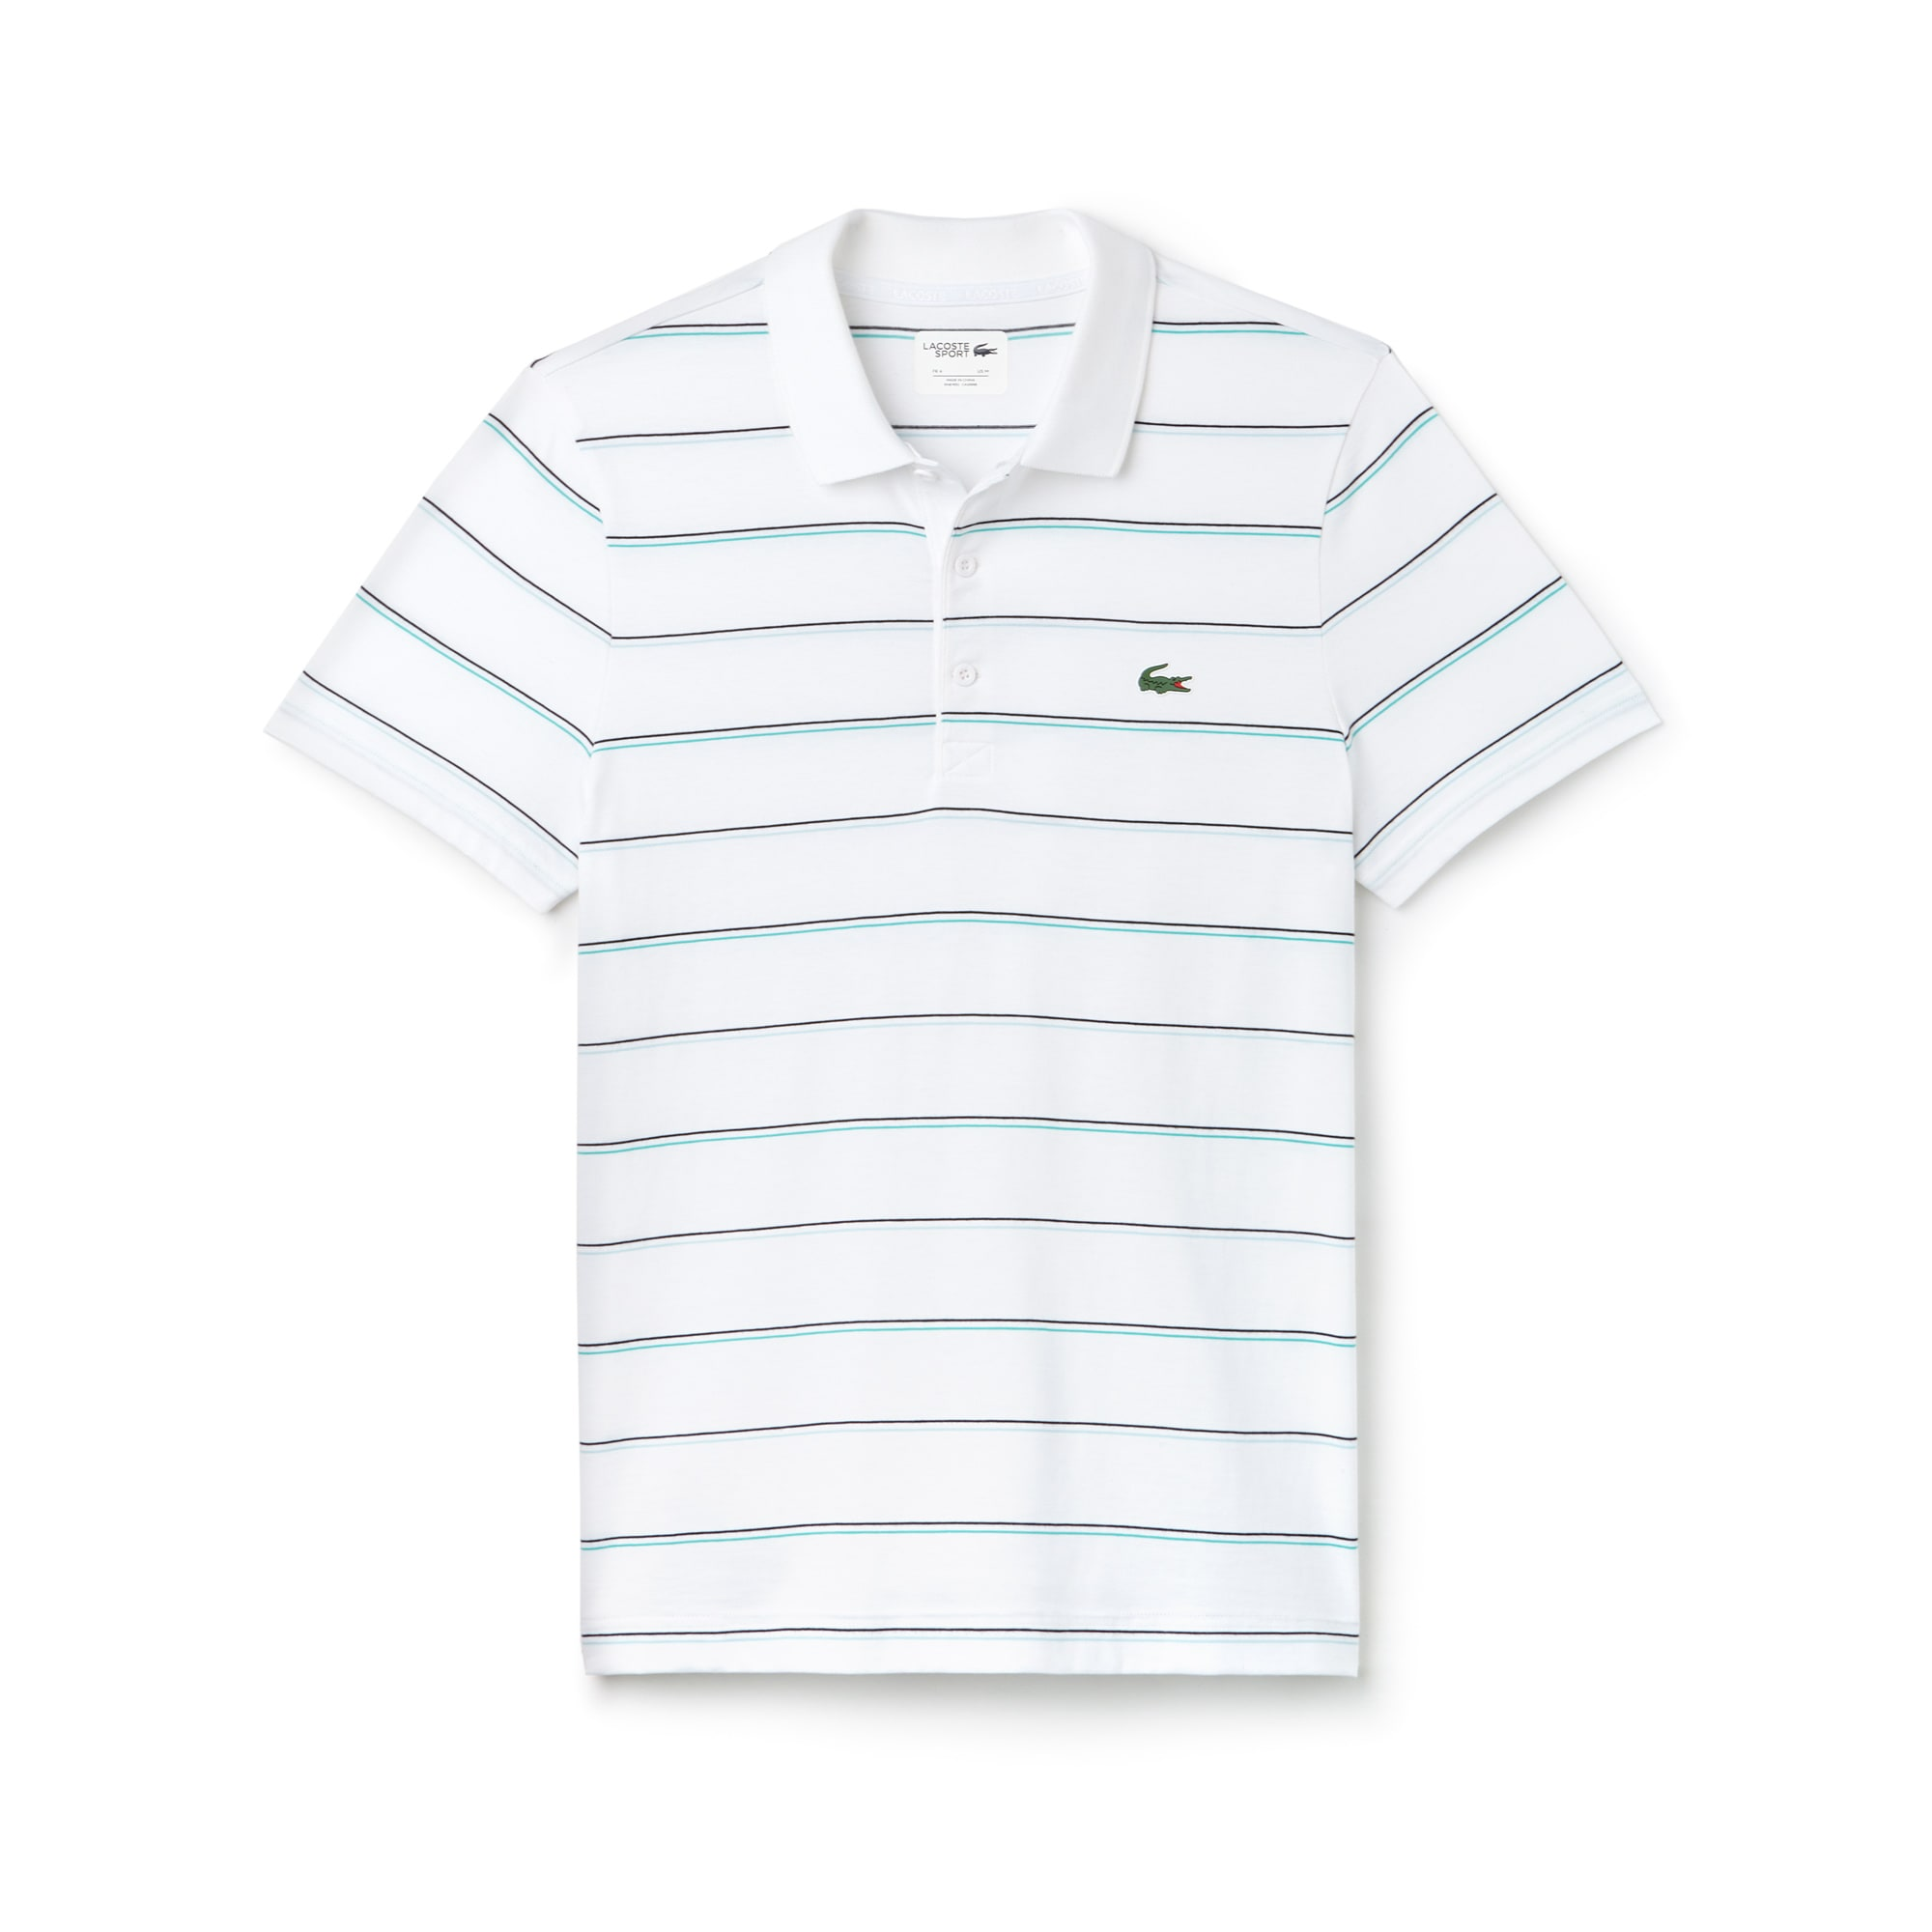 Men's SPORT Striped Cotton Jersey Tennis Polo